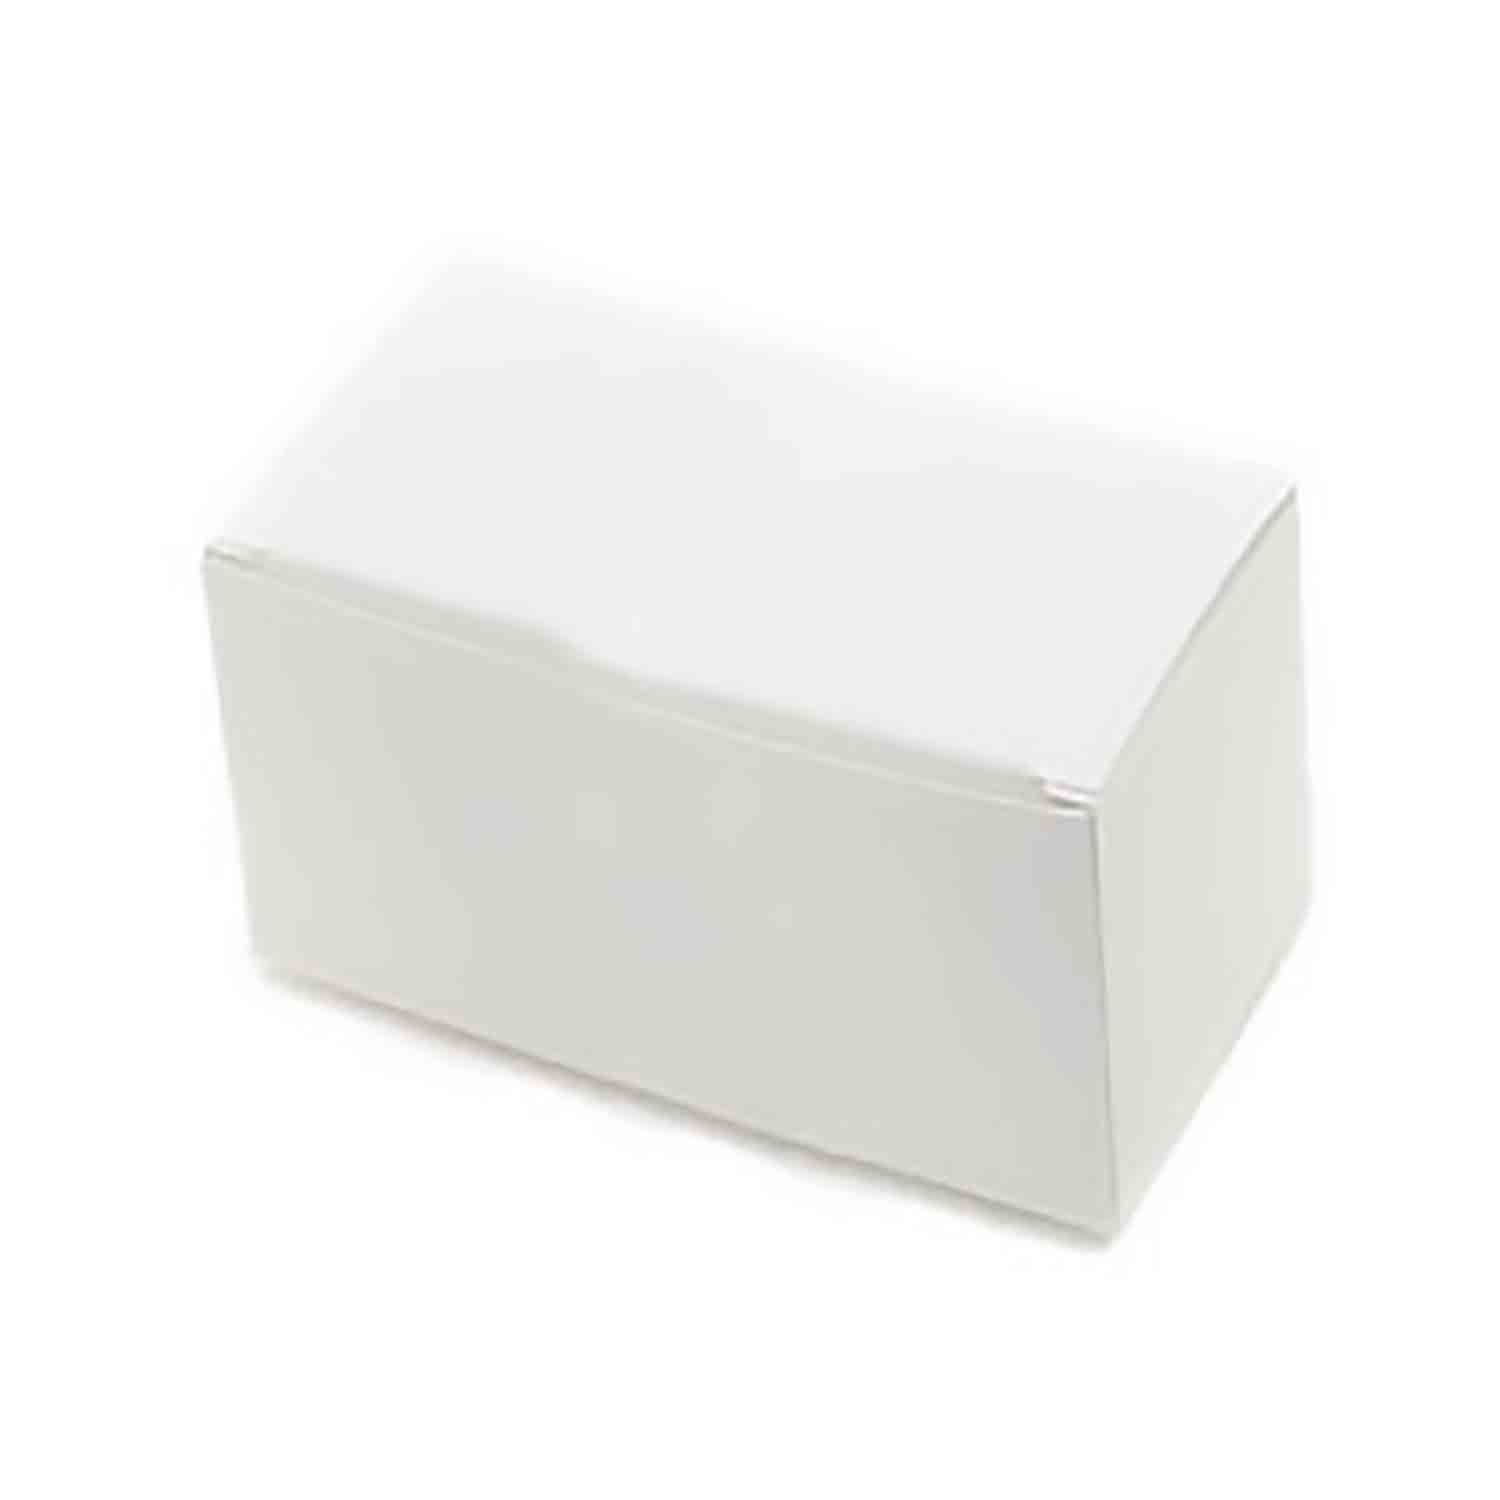 2 Pc. White Candy Box